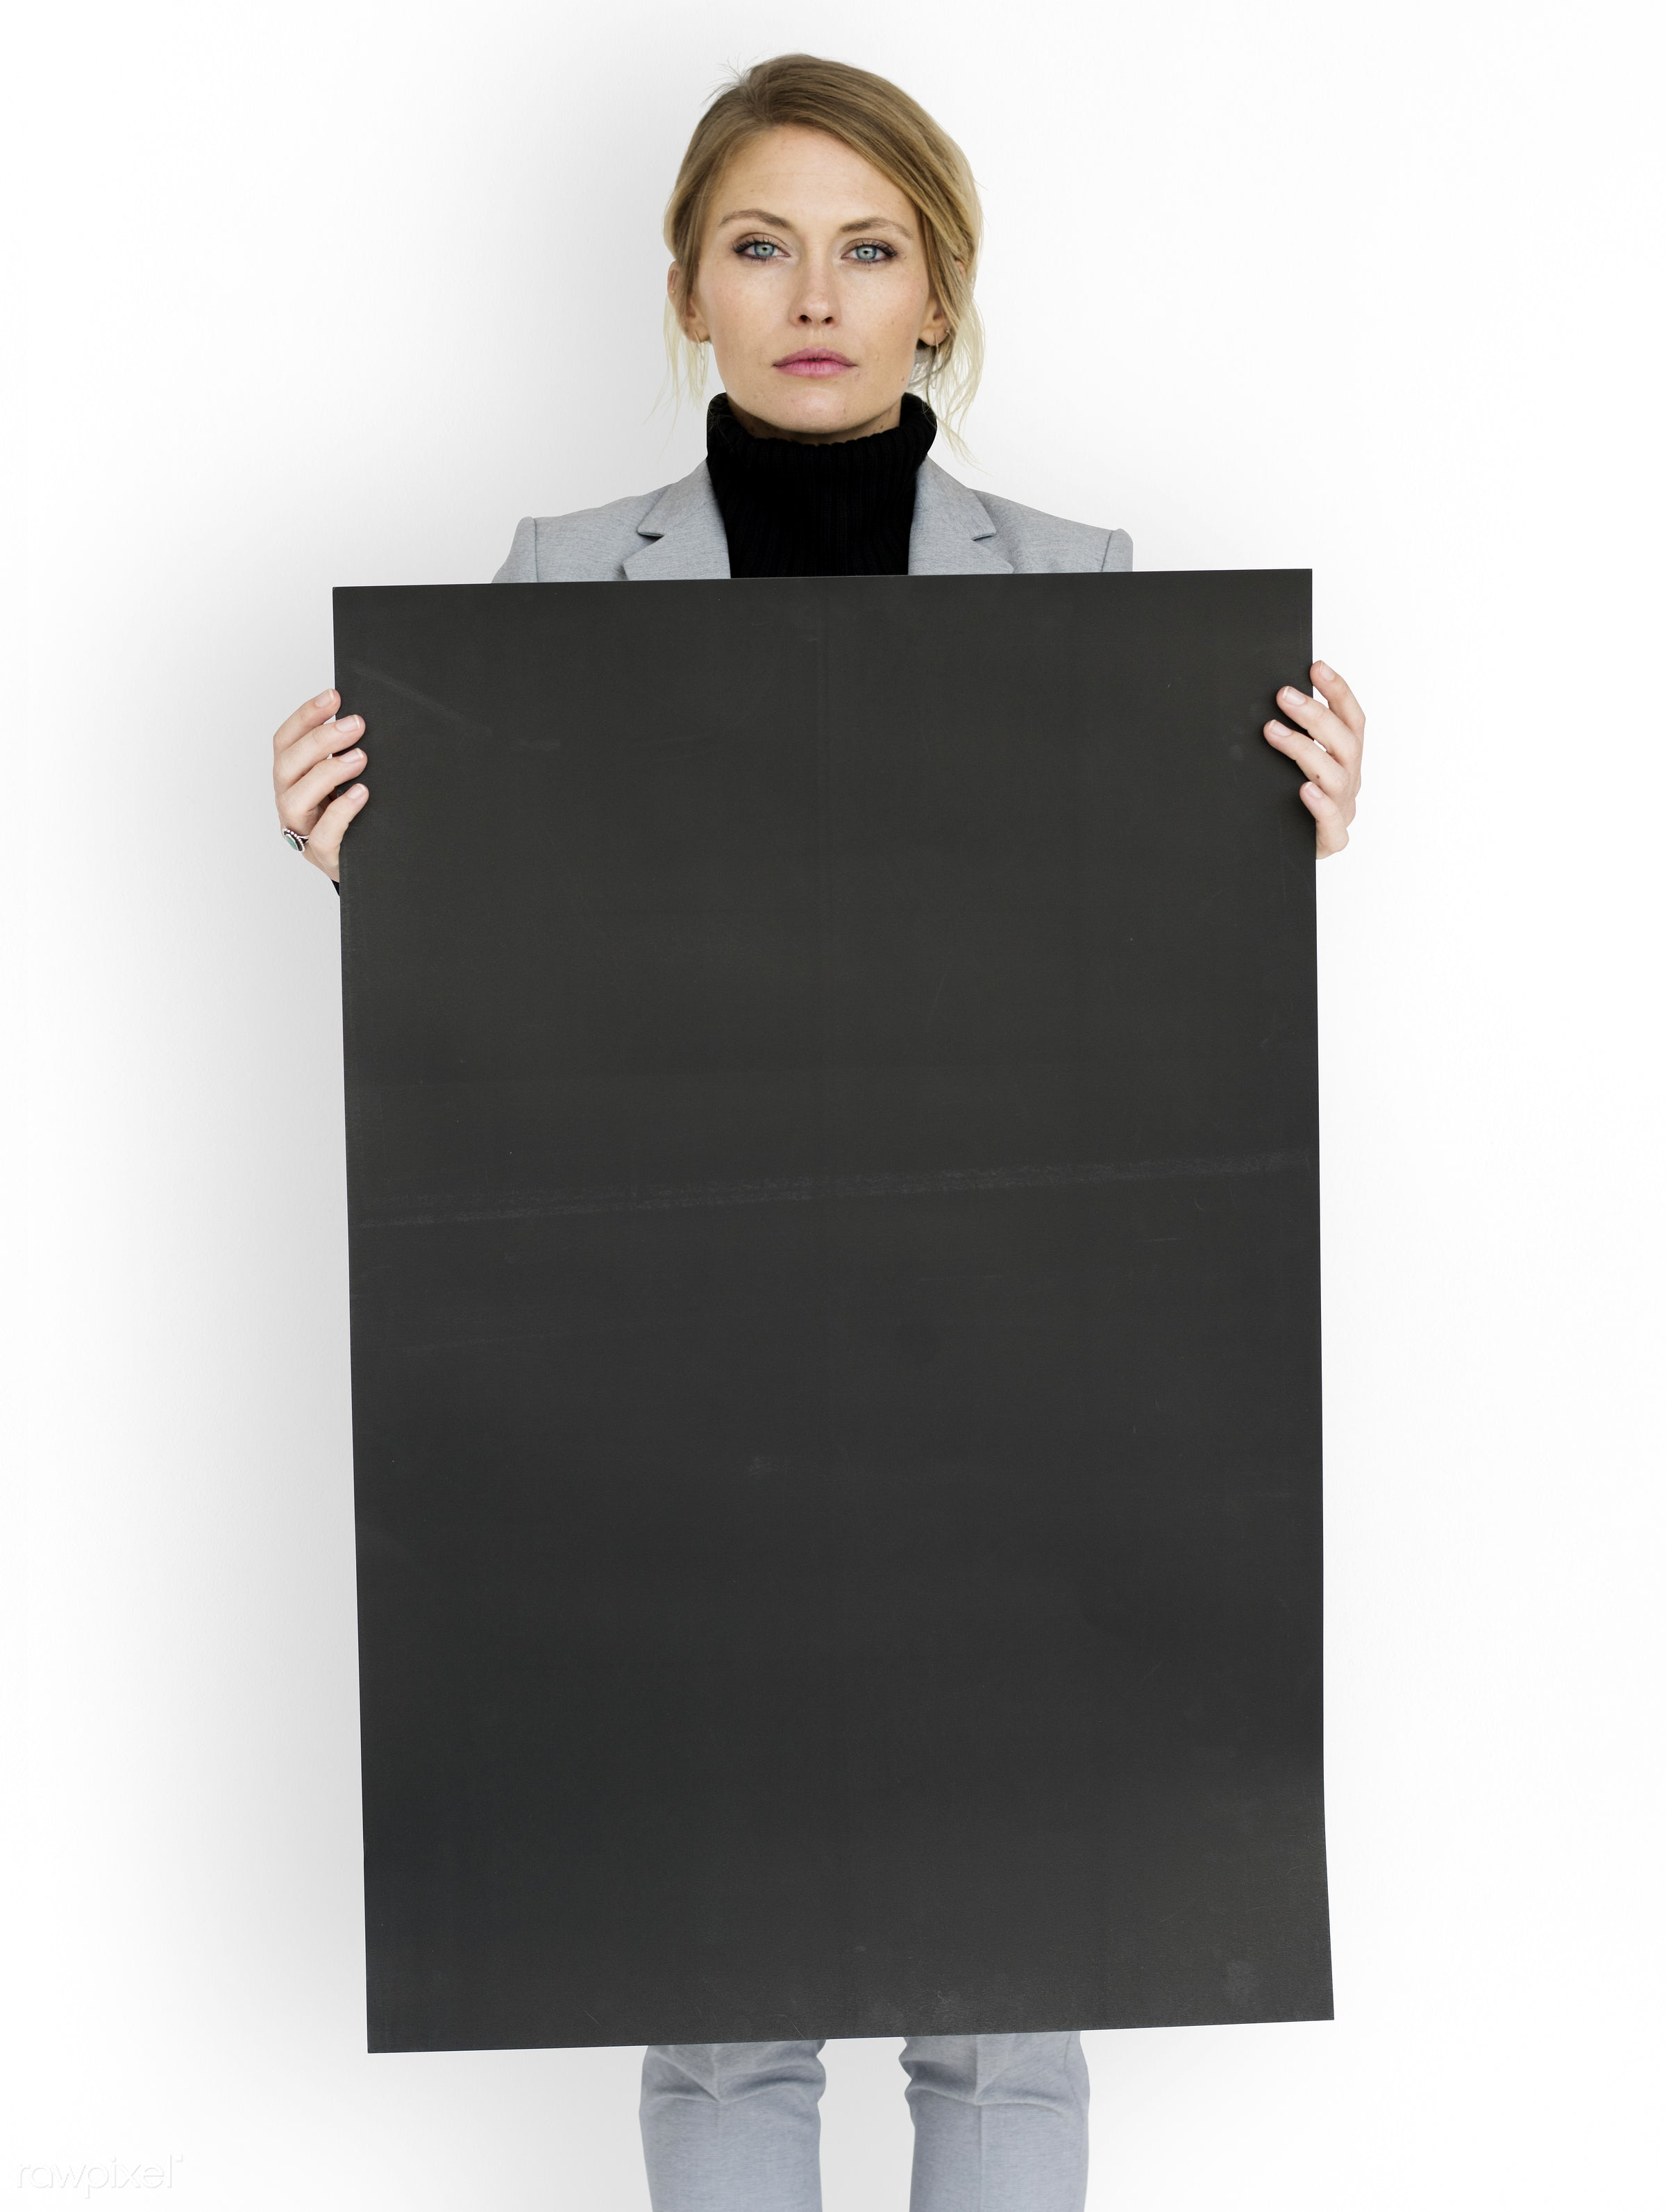 studio, expression, person, holding, courage, people, placard, woman, isolated, white, businesswoman, portrait, charming,...